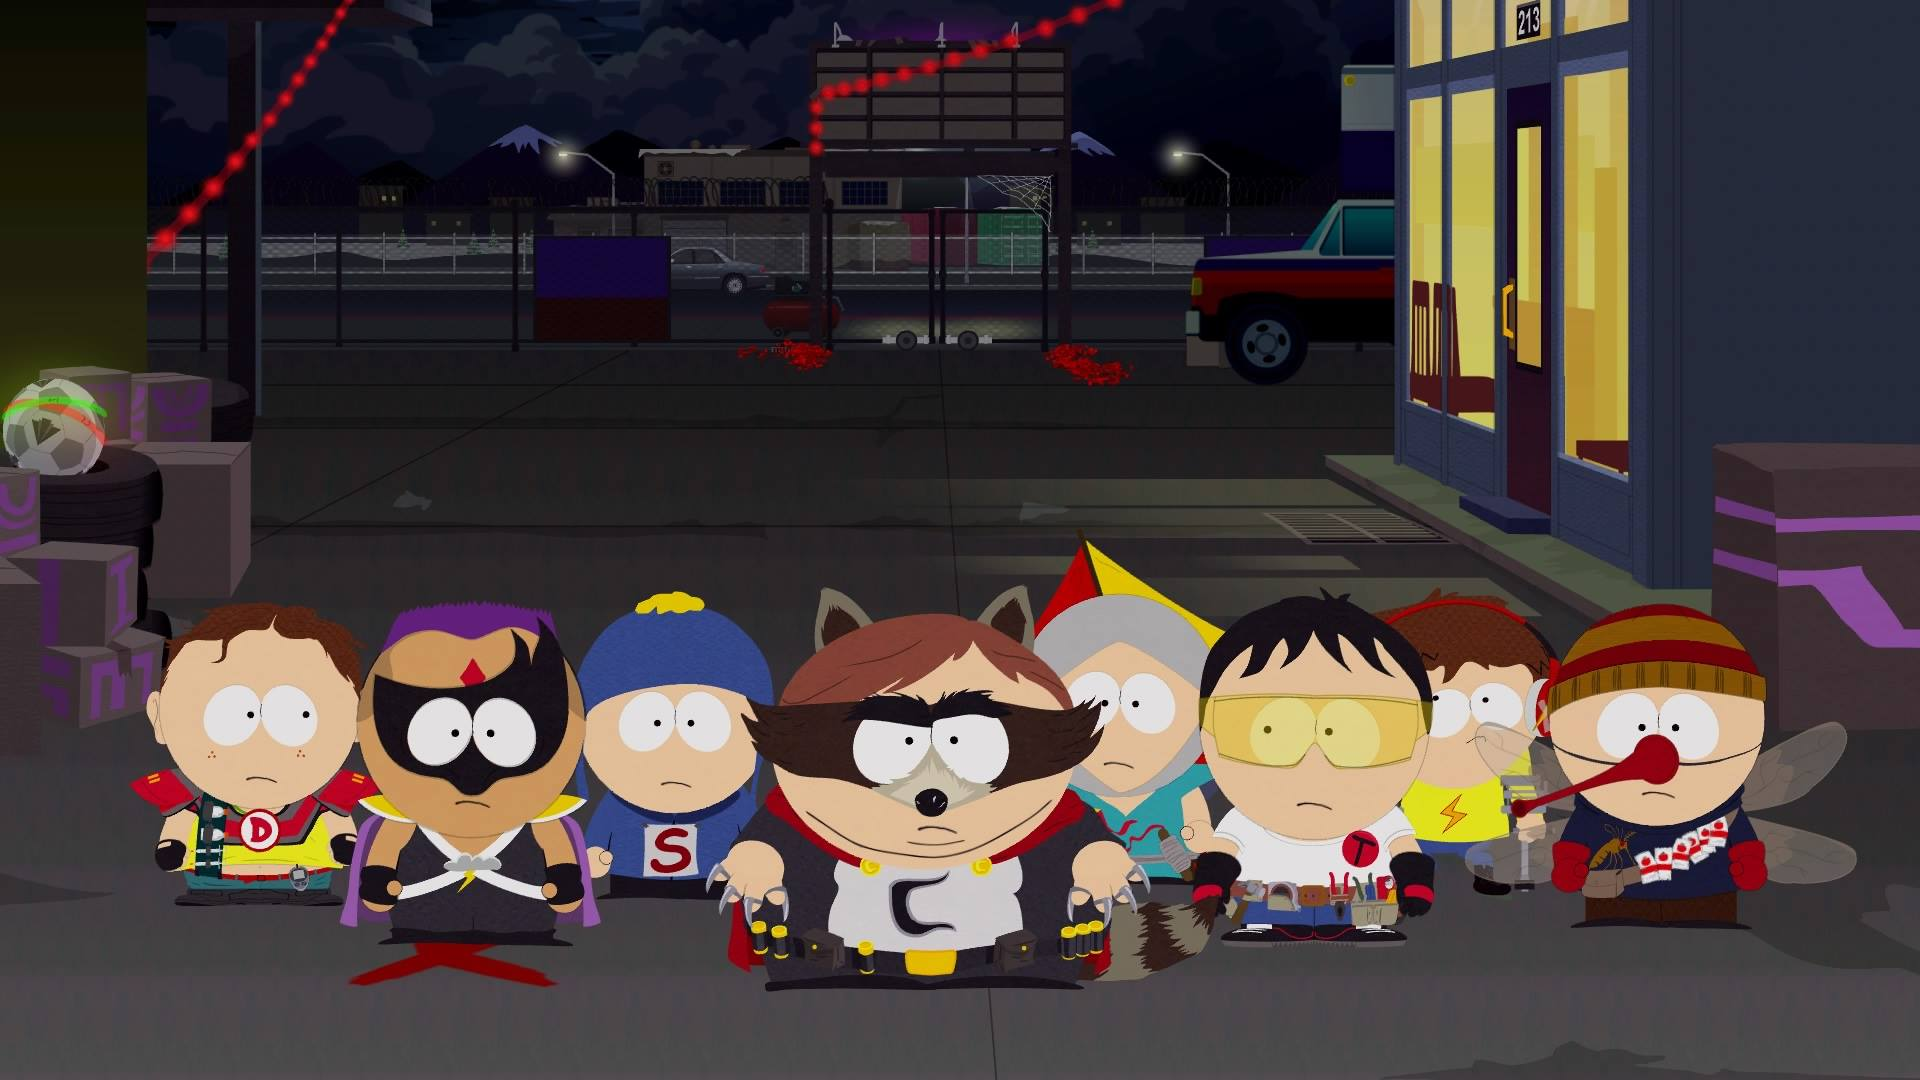 South Park The Fractured but Whole [Warranty 5 years] 2019